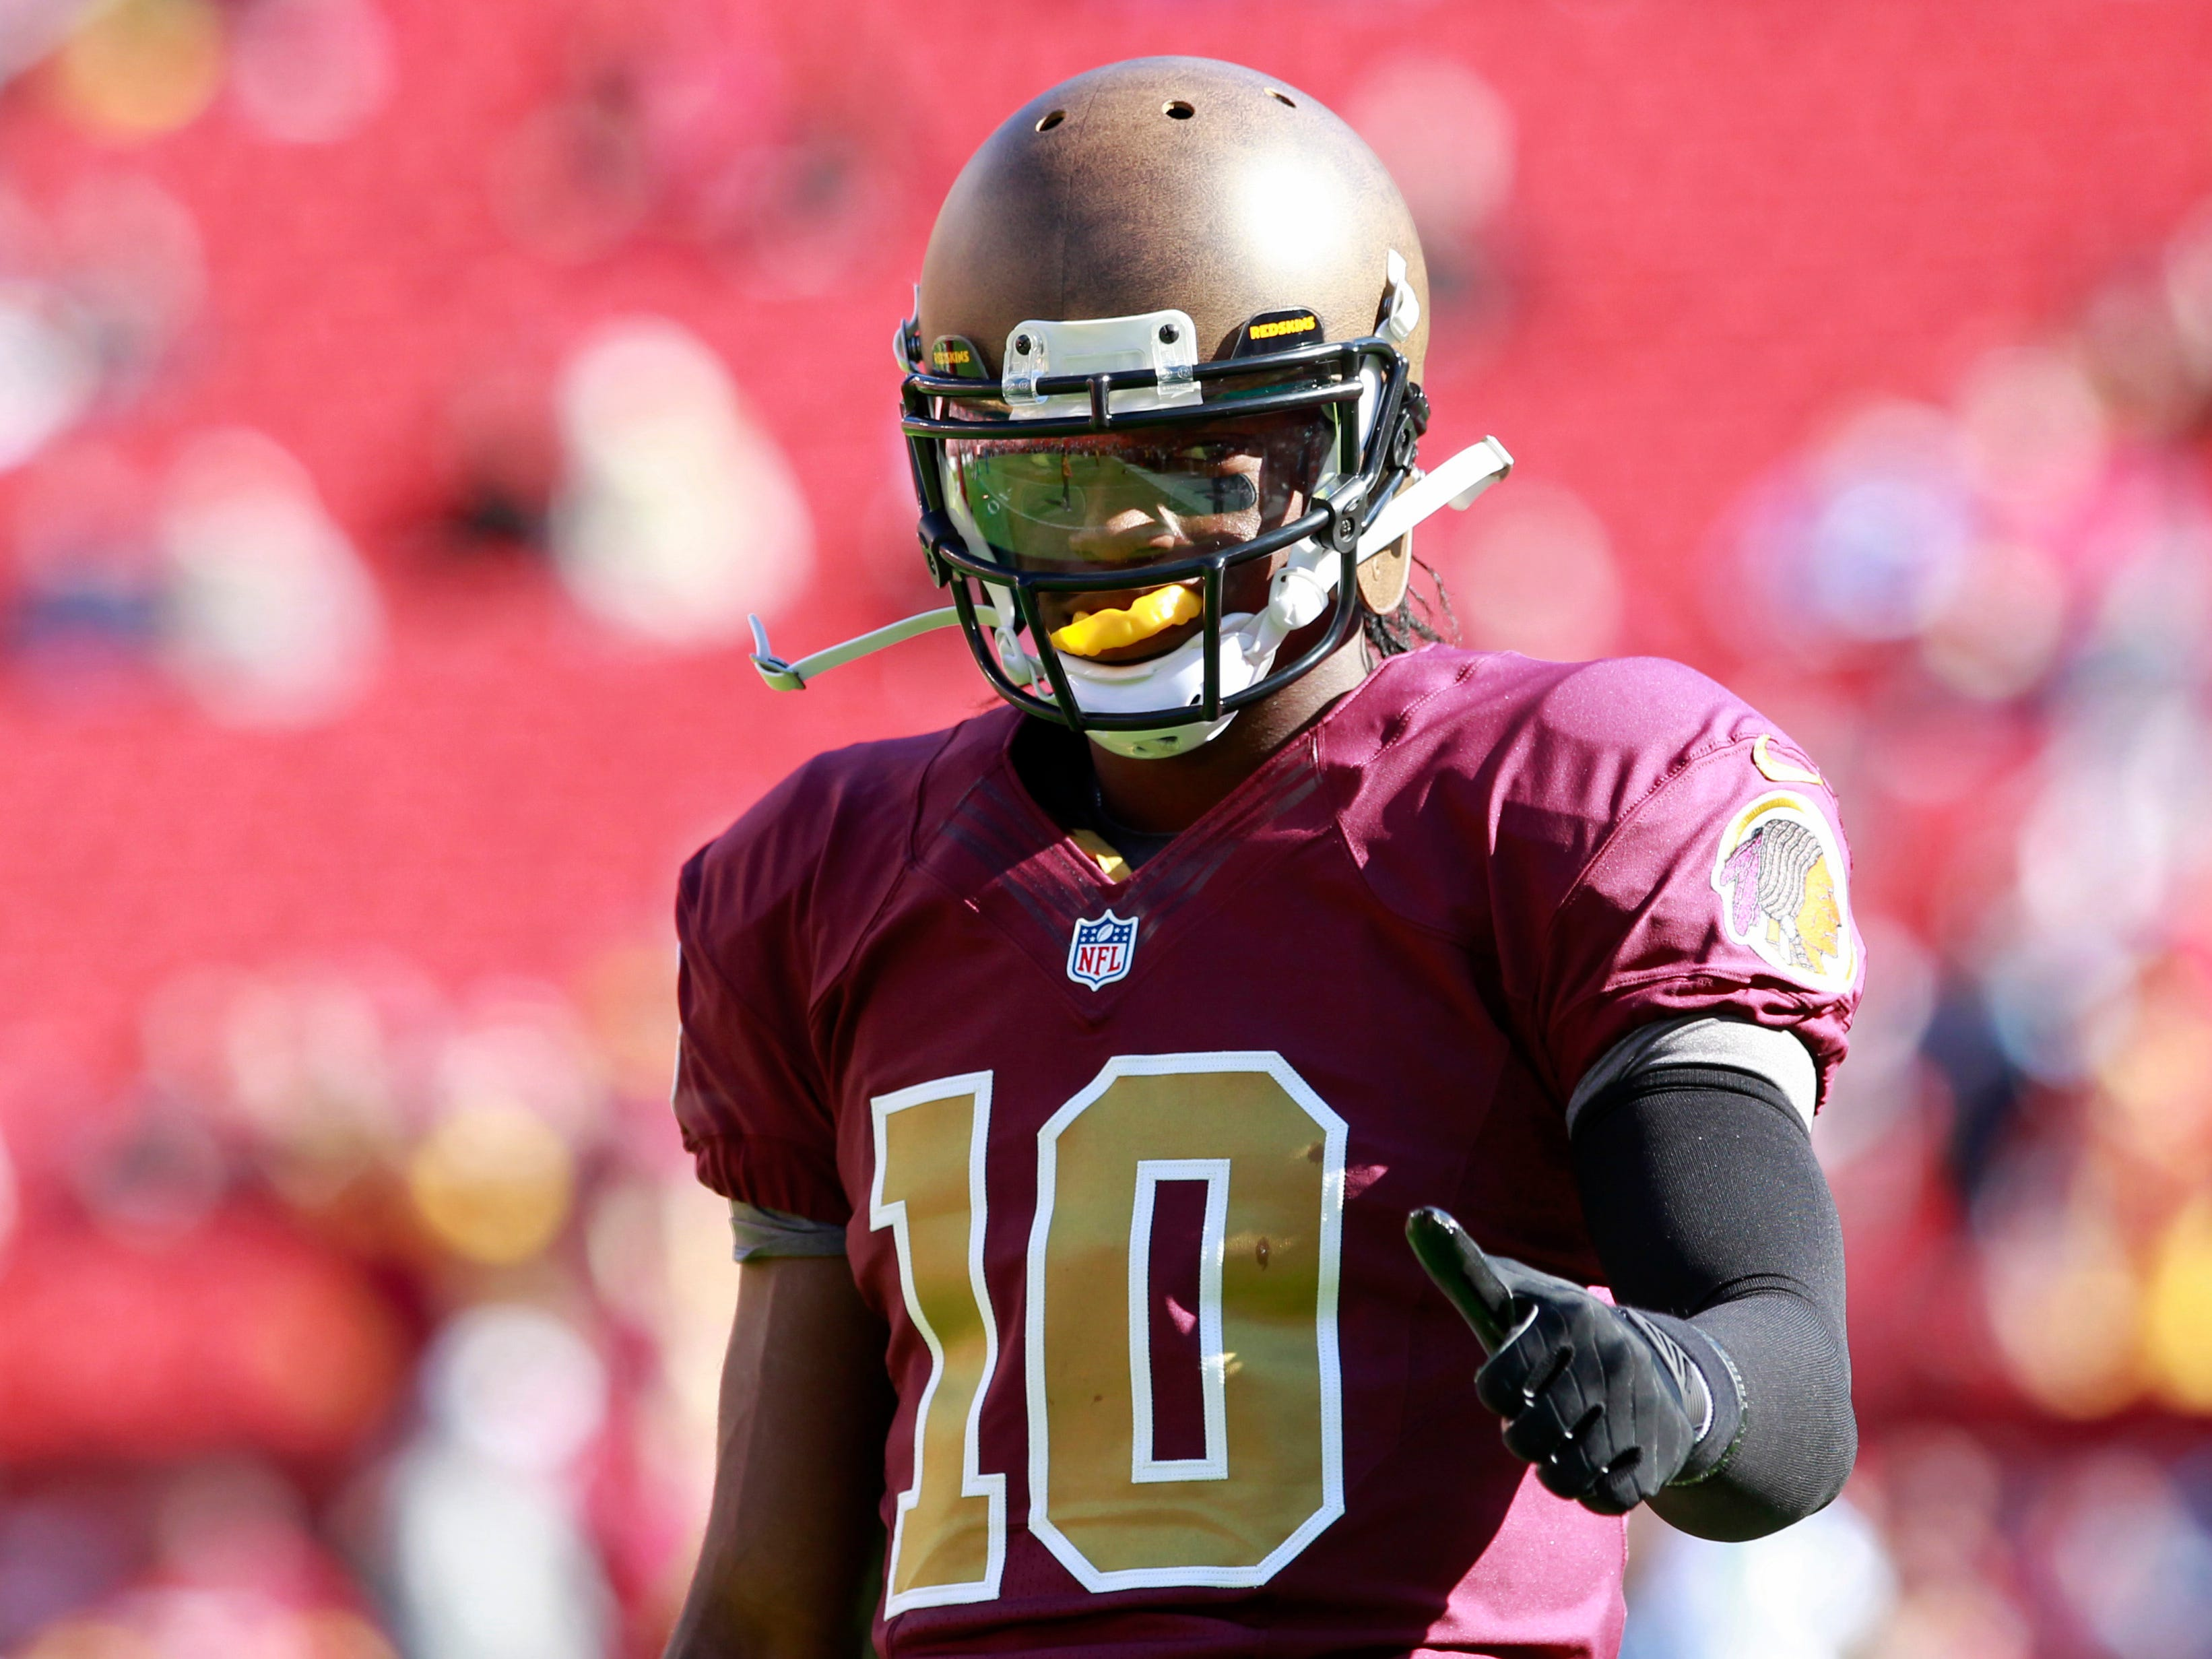 The Redskins' colors are supposed to be burgundy and gold, not lipstick and mustard.